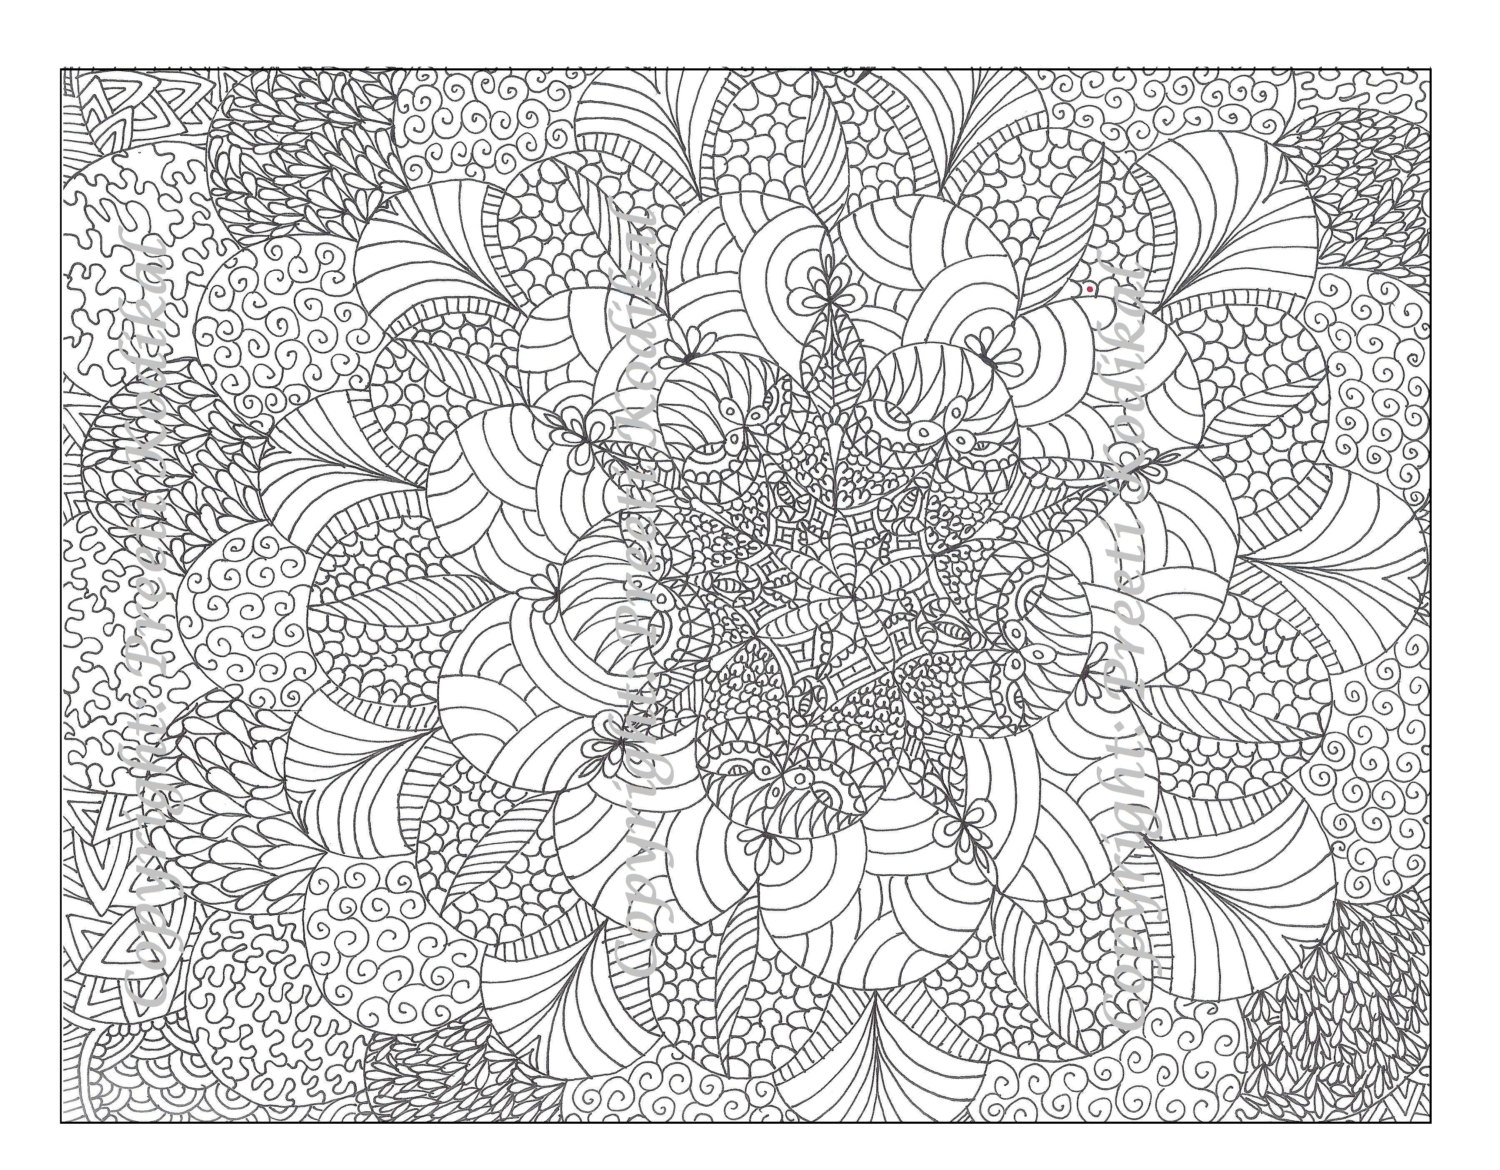 Coloring pages to print designs - Detailed Coloring Pages Printable